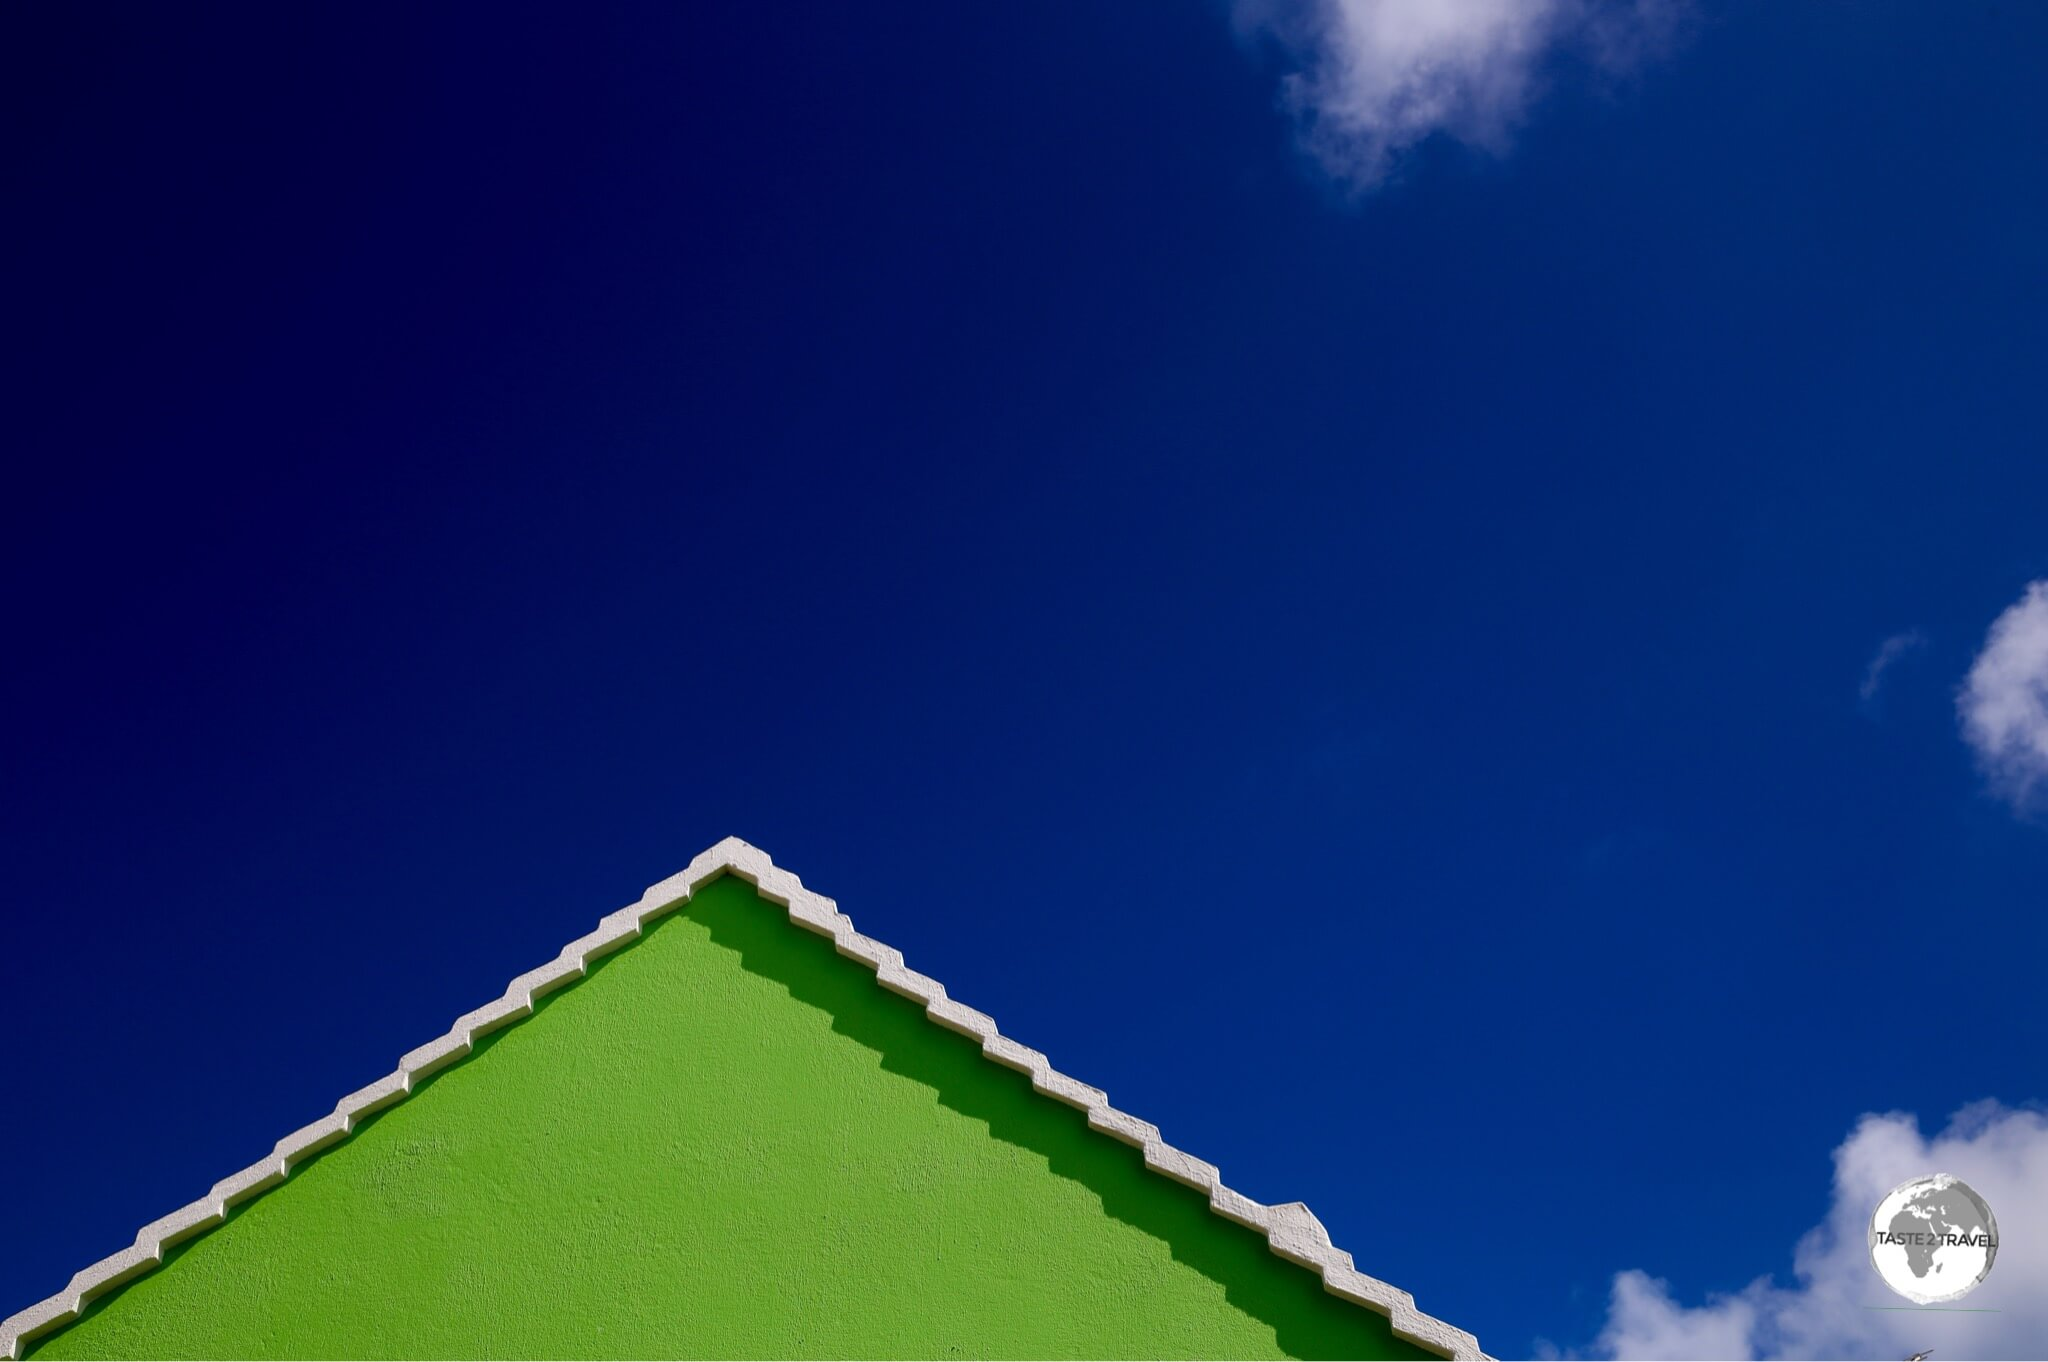 Green gable against a blue sky.